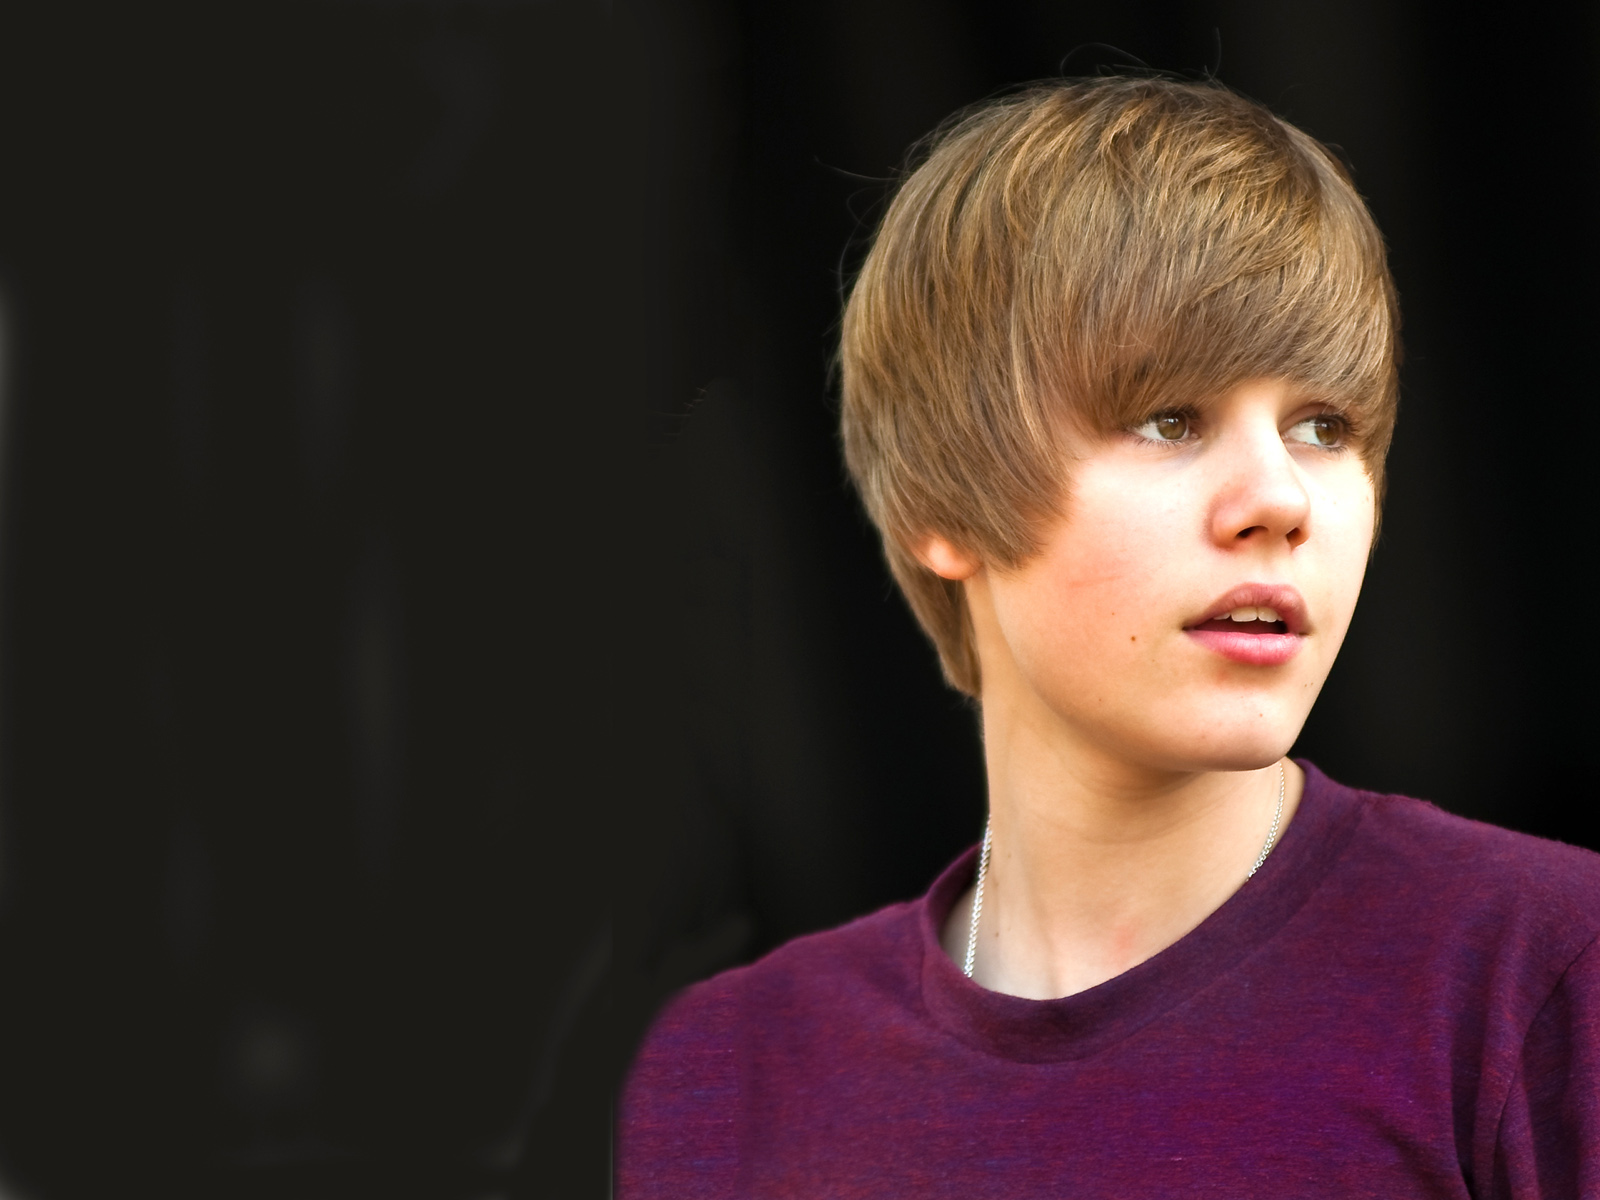 Hd wallpaper justin bieber - Justin Bieber Awesome And Fabulous Images Hd Wallpapers Photos And Pictures Galaxy Picture Free Download Images Online